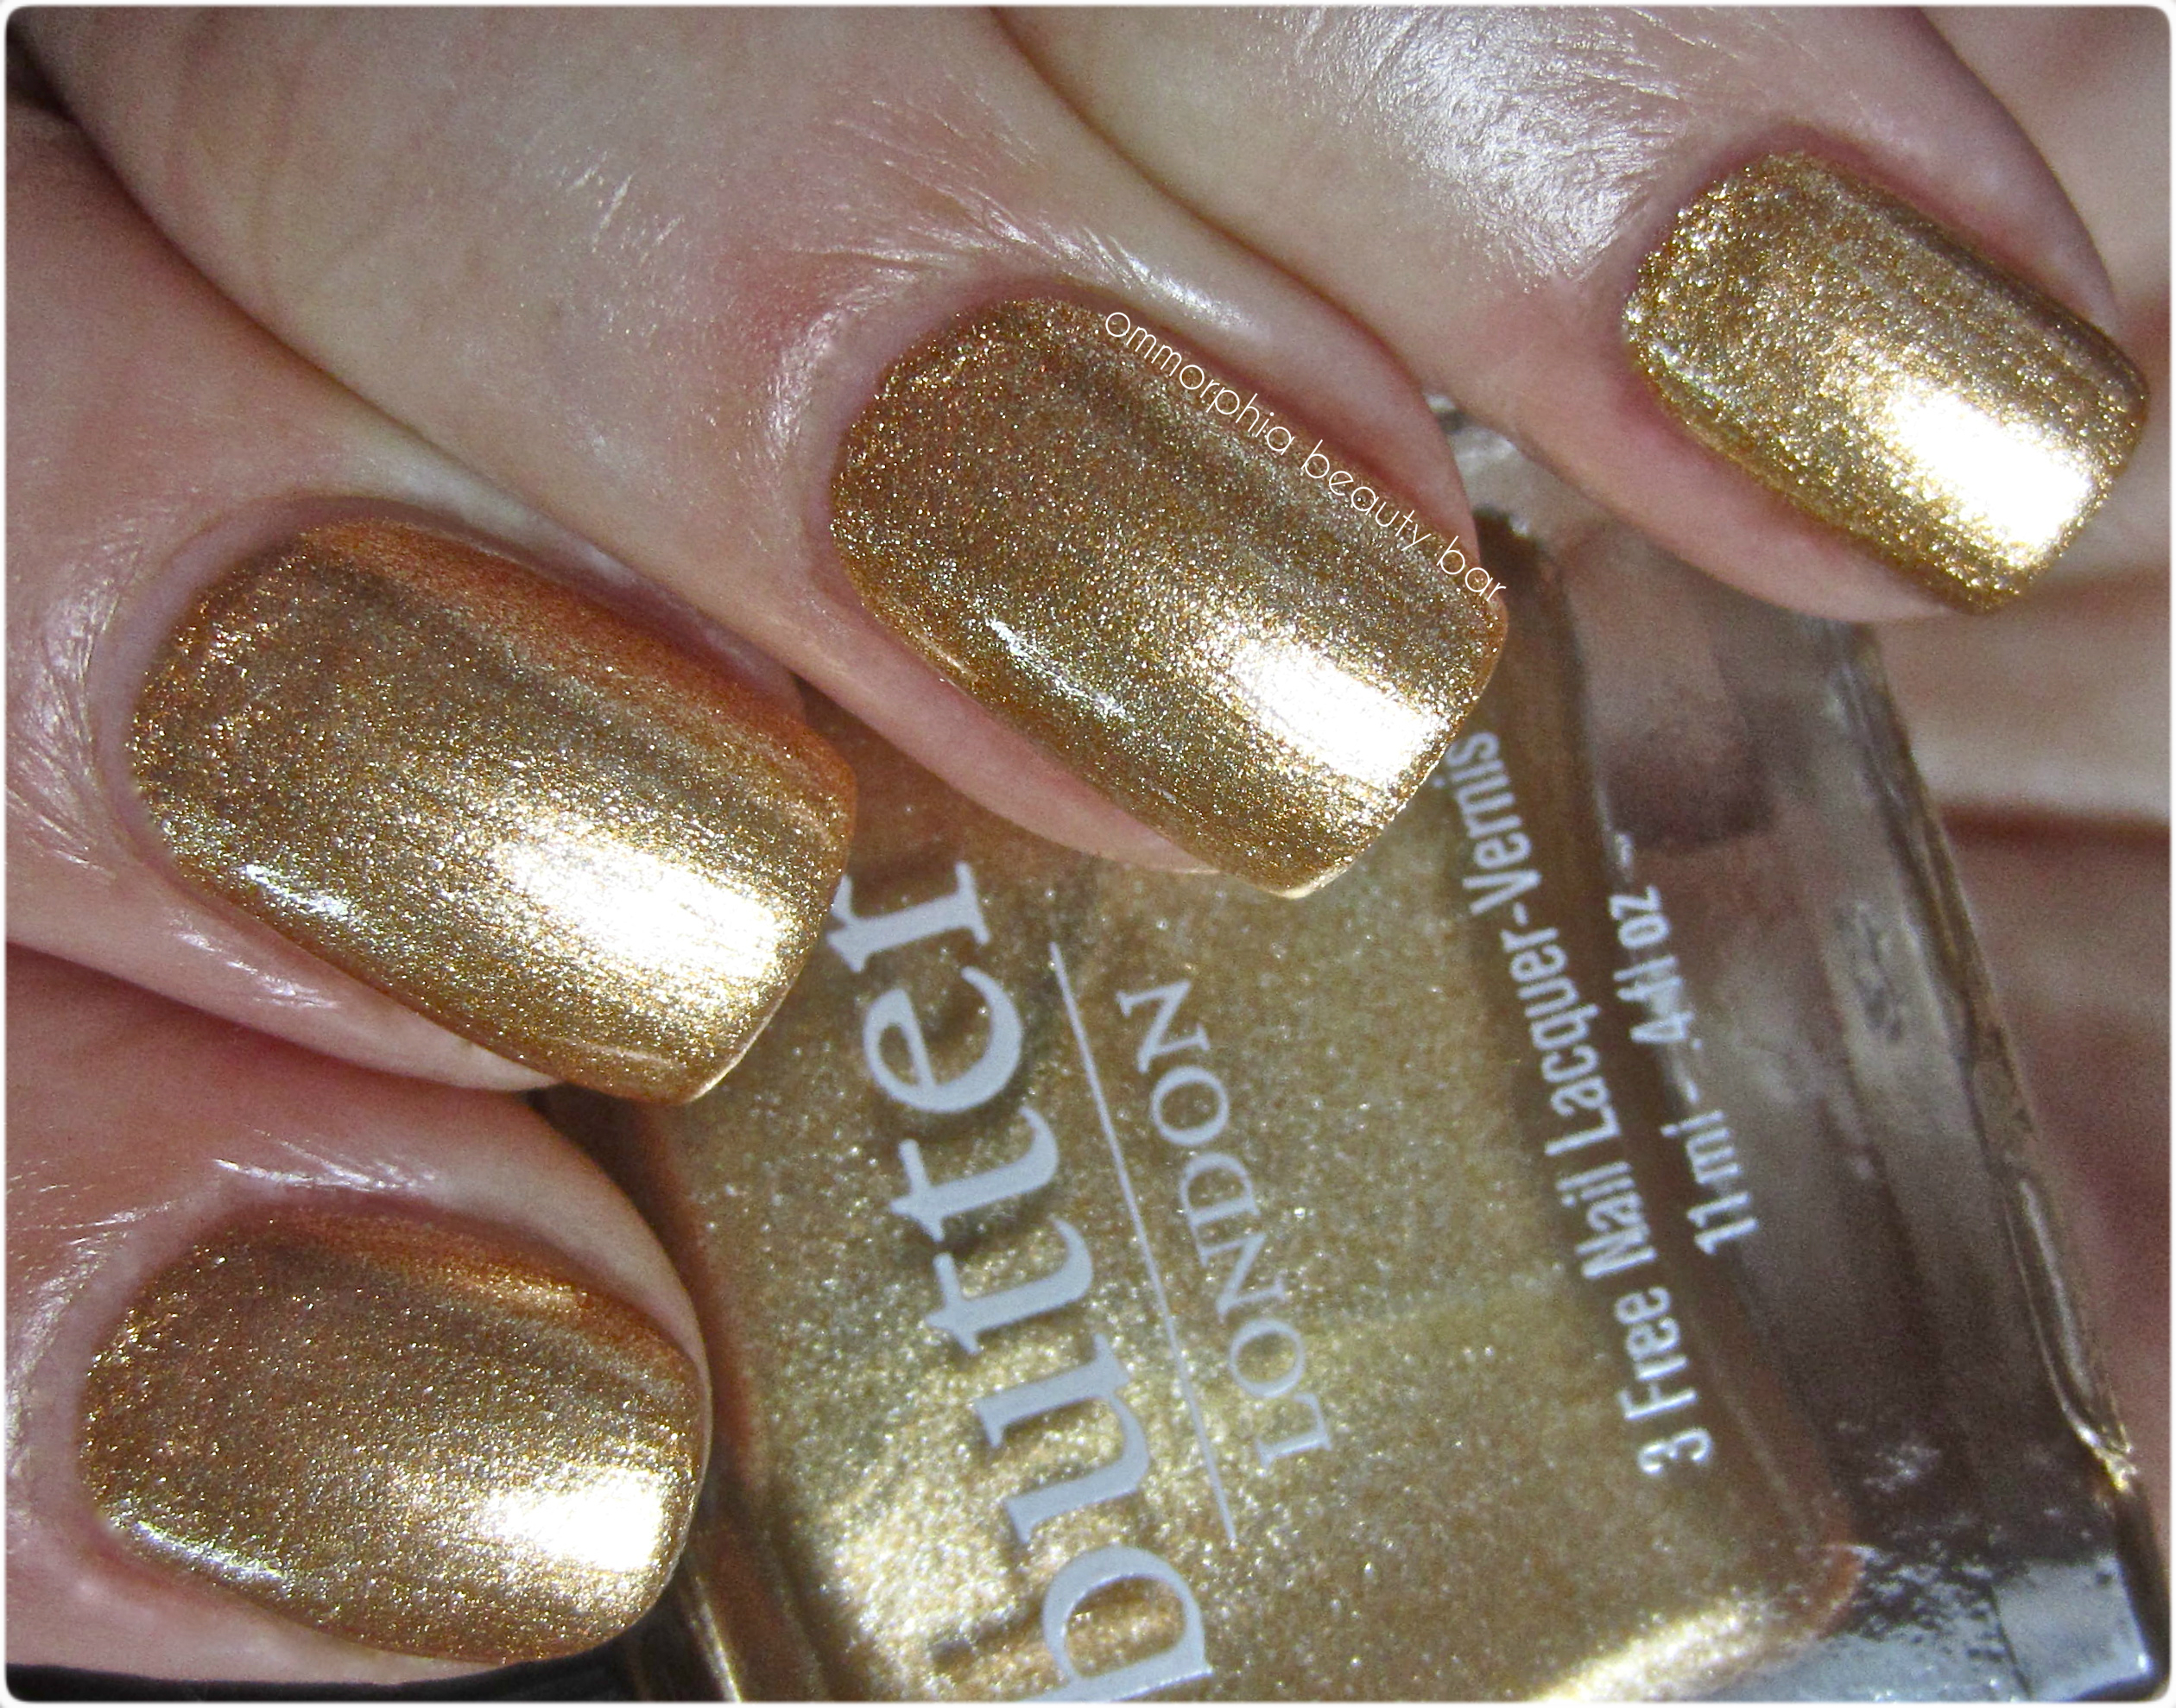 Butter London Summer Holiday 2013 Collection & a special promo!